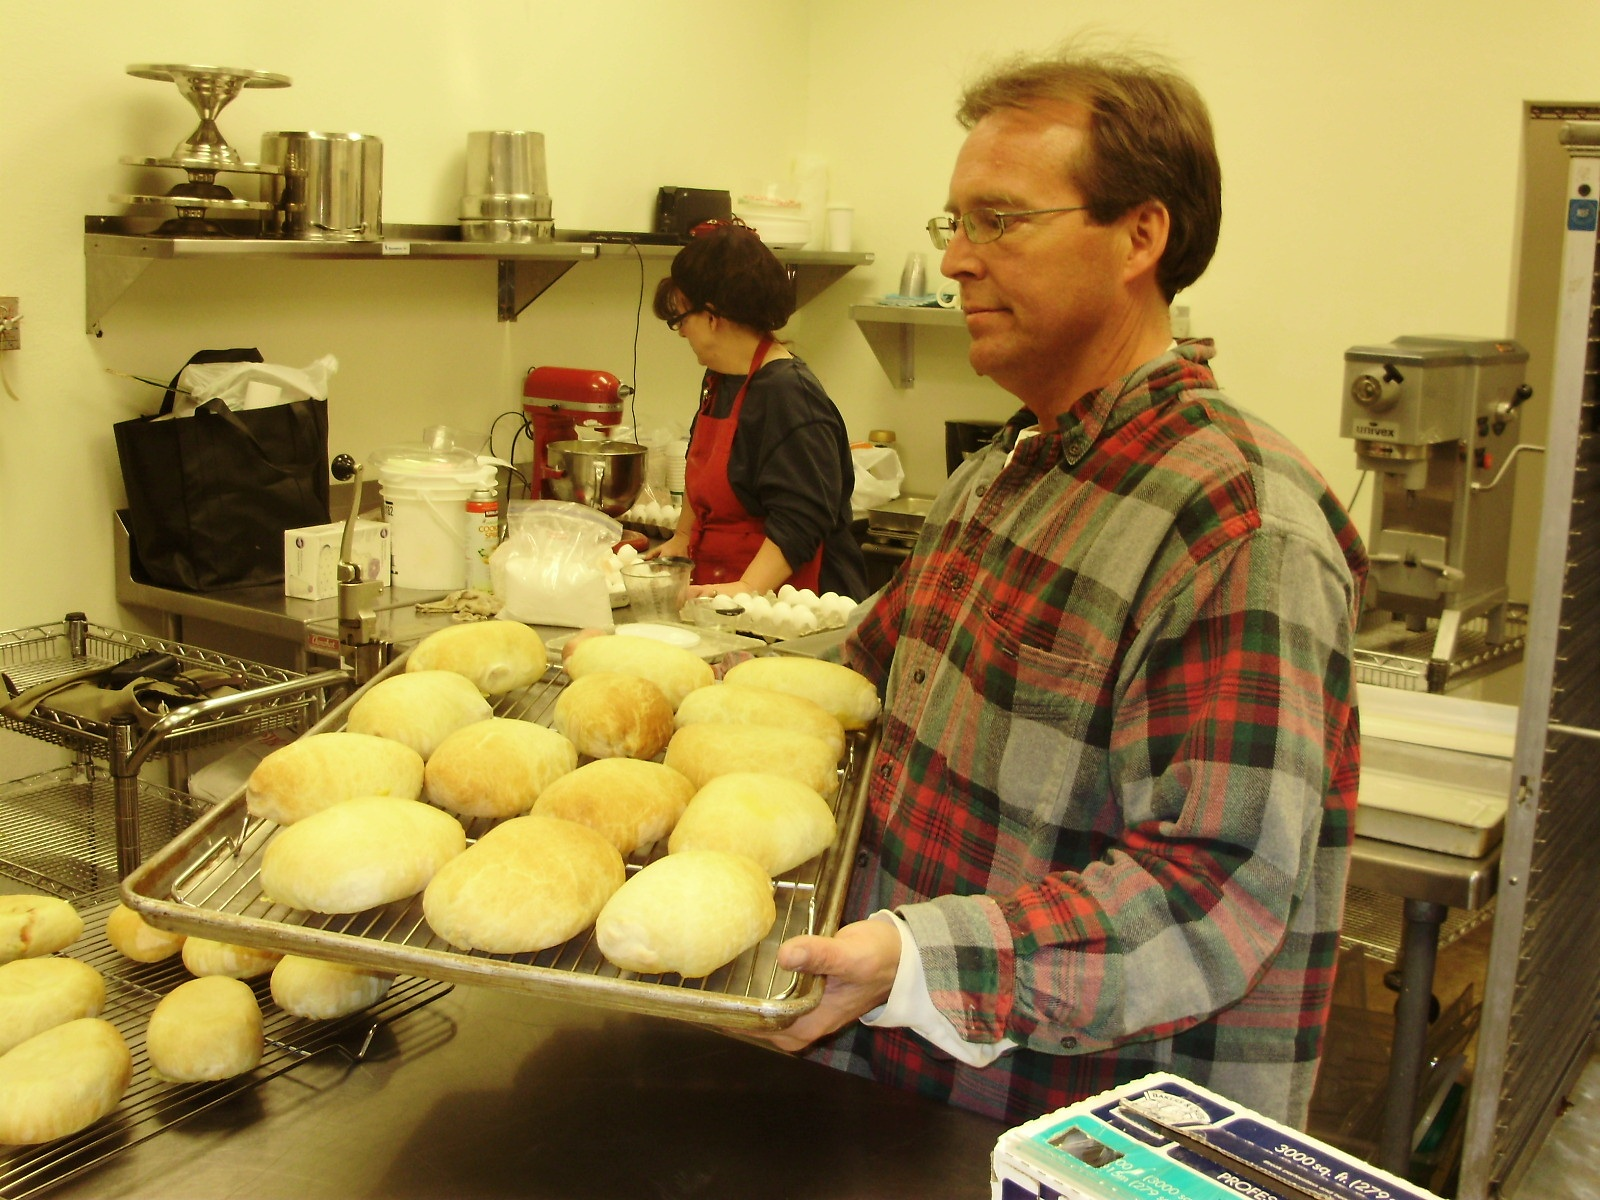 Photo by Steven SaintBesides providing kitchen space for local food producers, Jerry Downing (front) makes his own pocket sandwich lie at Gotta Love It! Kitchen. Care Young (back) is getting ready to cater a wedding.